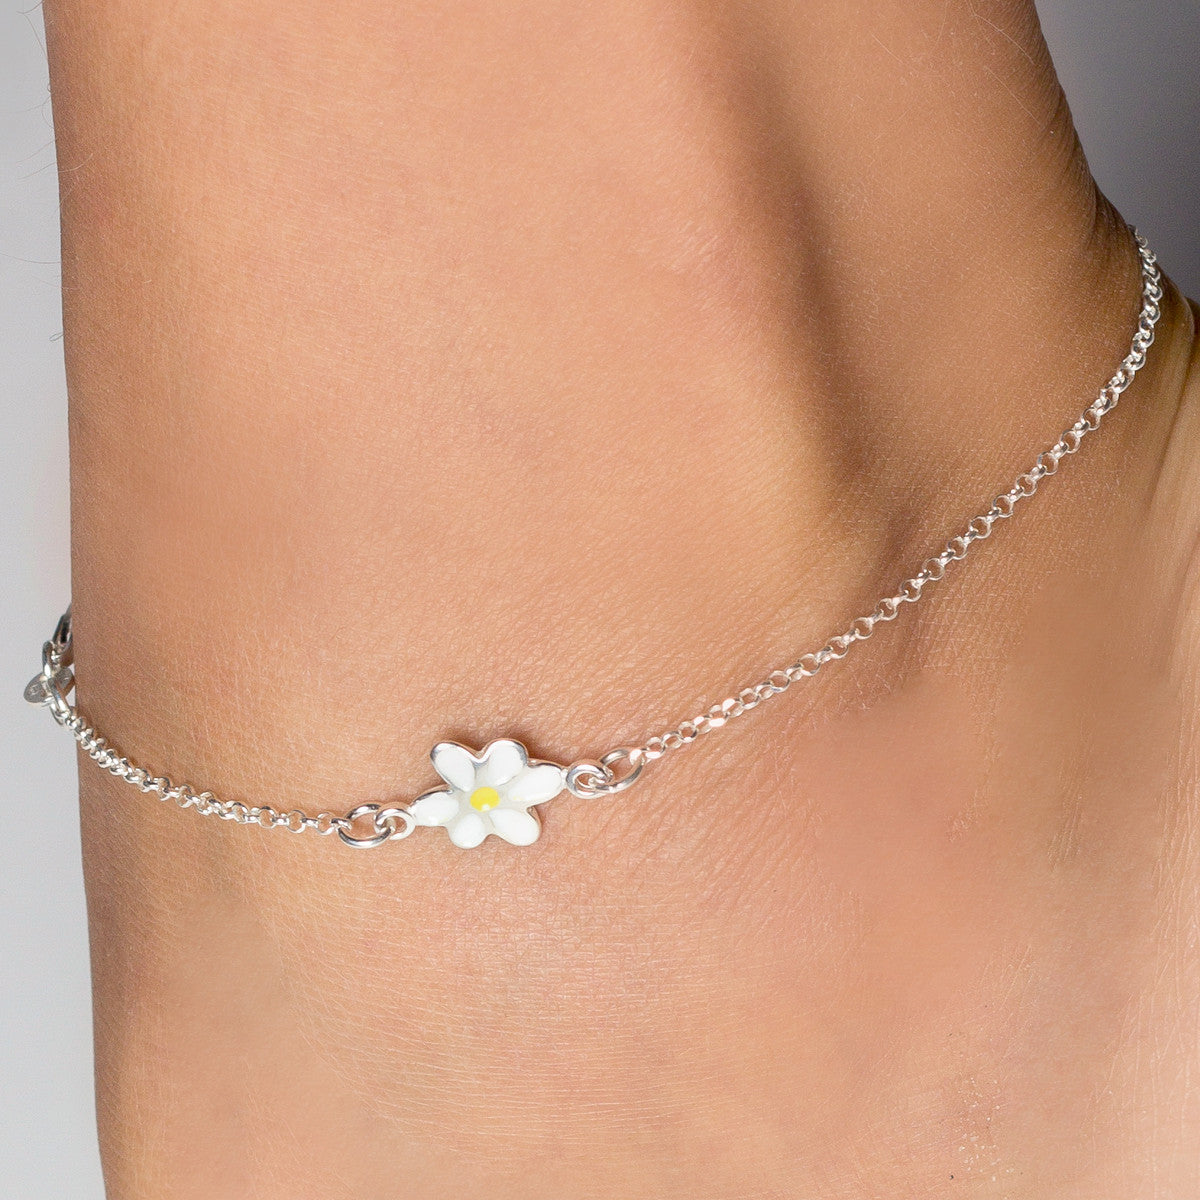 gold ankle anklet meira t lyst yellow whitegold bracelet moon jewelry star women chain s white and diamond